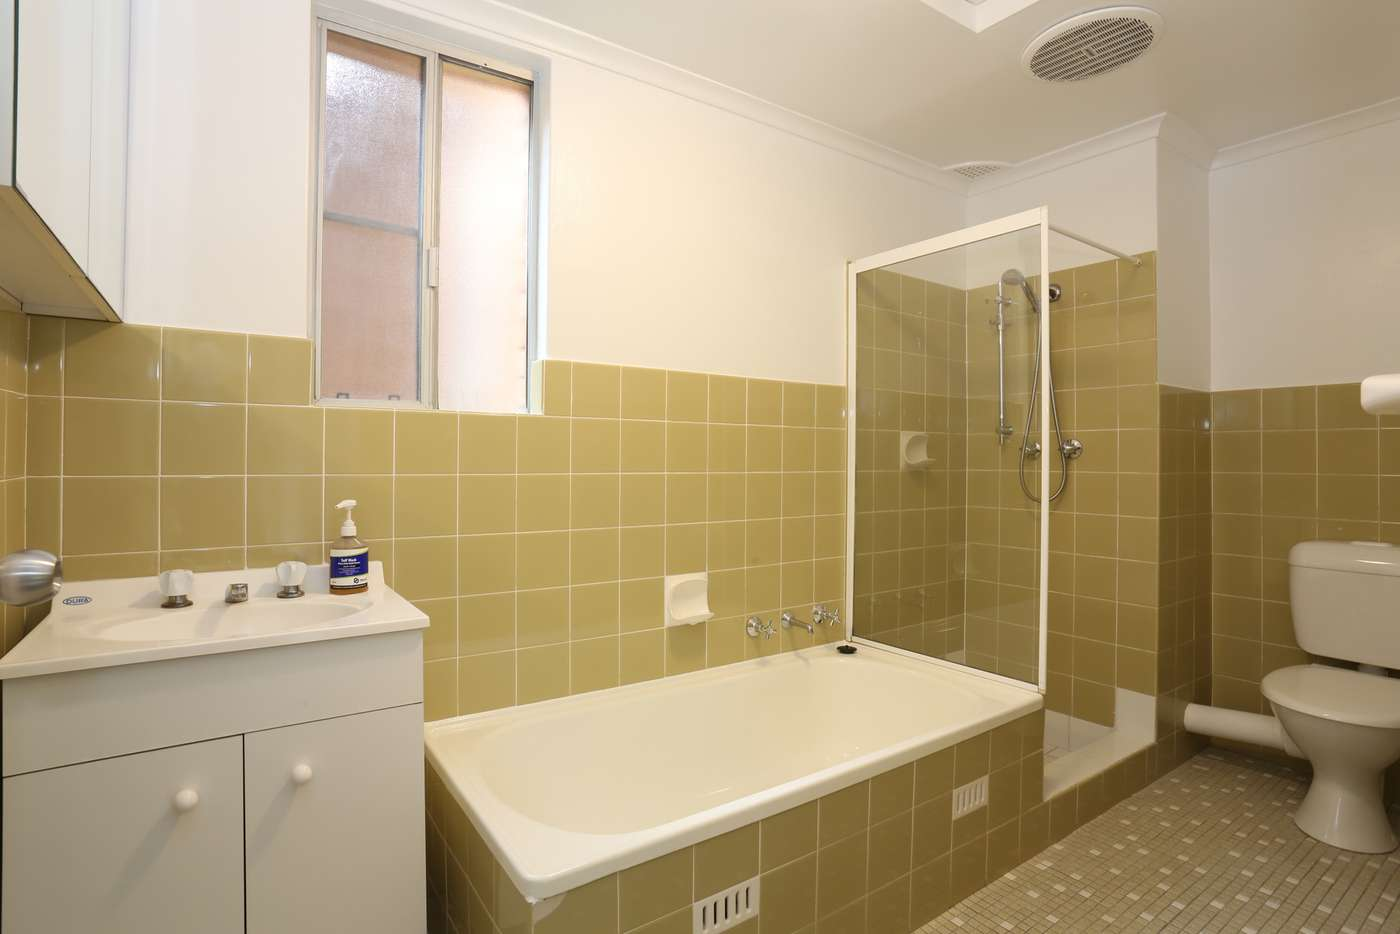 Sixth view of Homely apartment listing, 4/5 Thomas Street, Parramatta NSW 2150